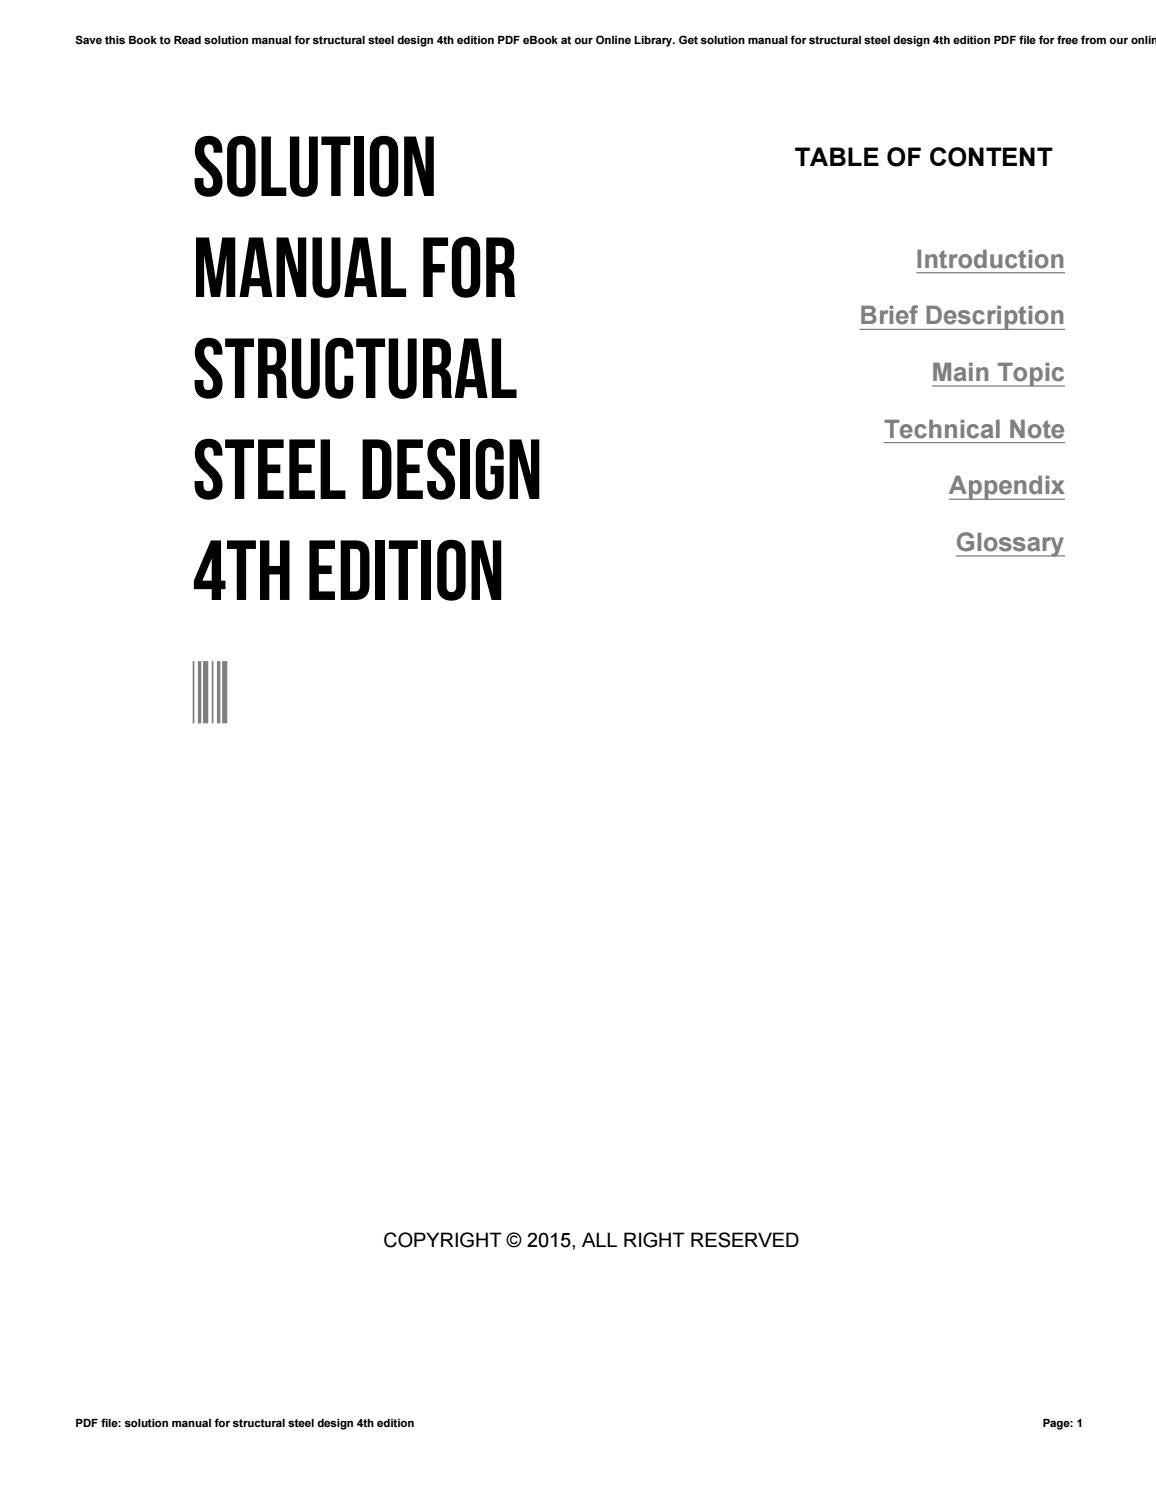 Solution manual for structural steel design 4th edition by